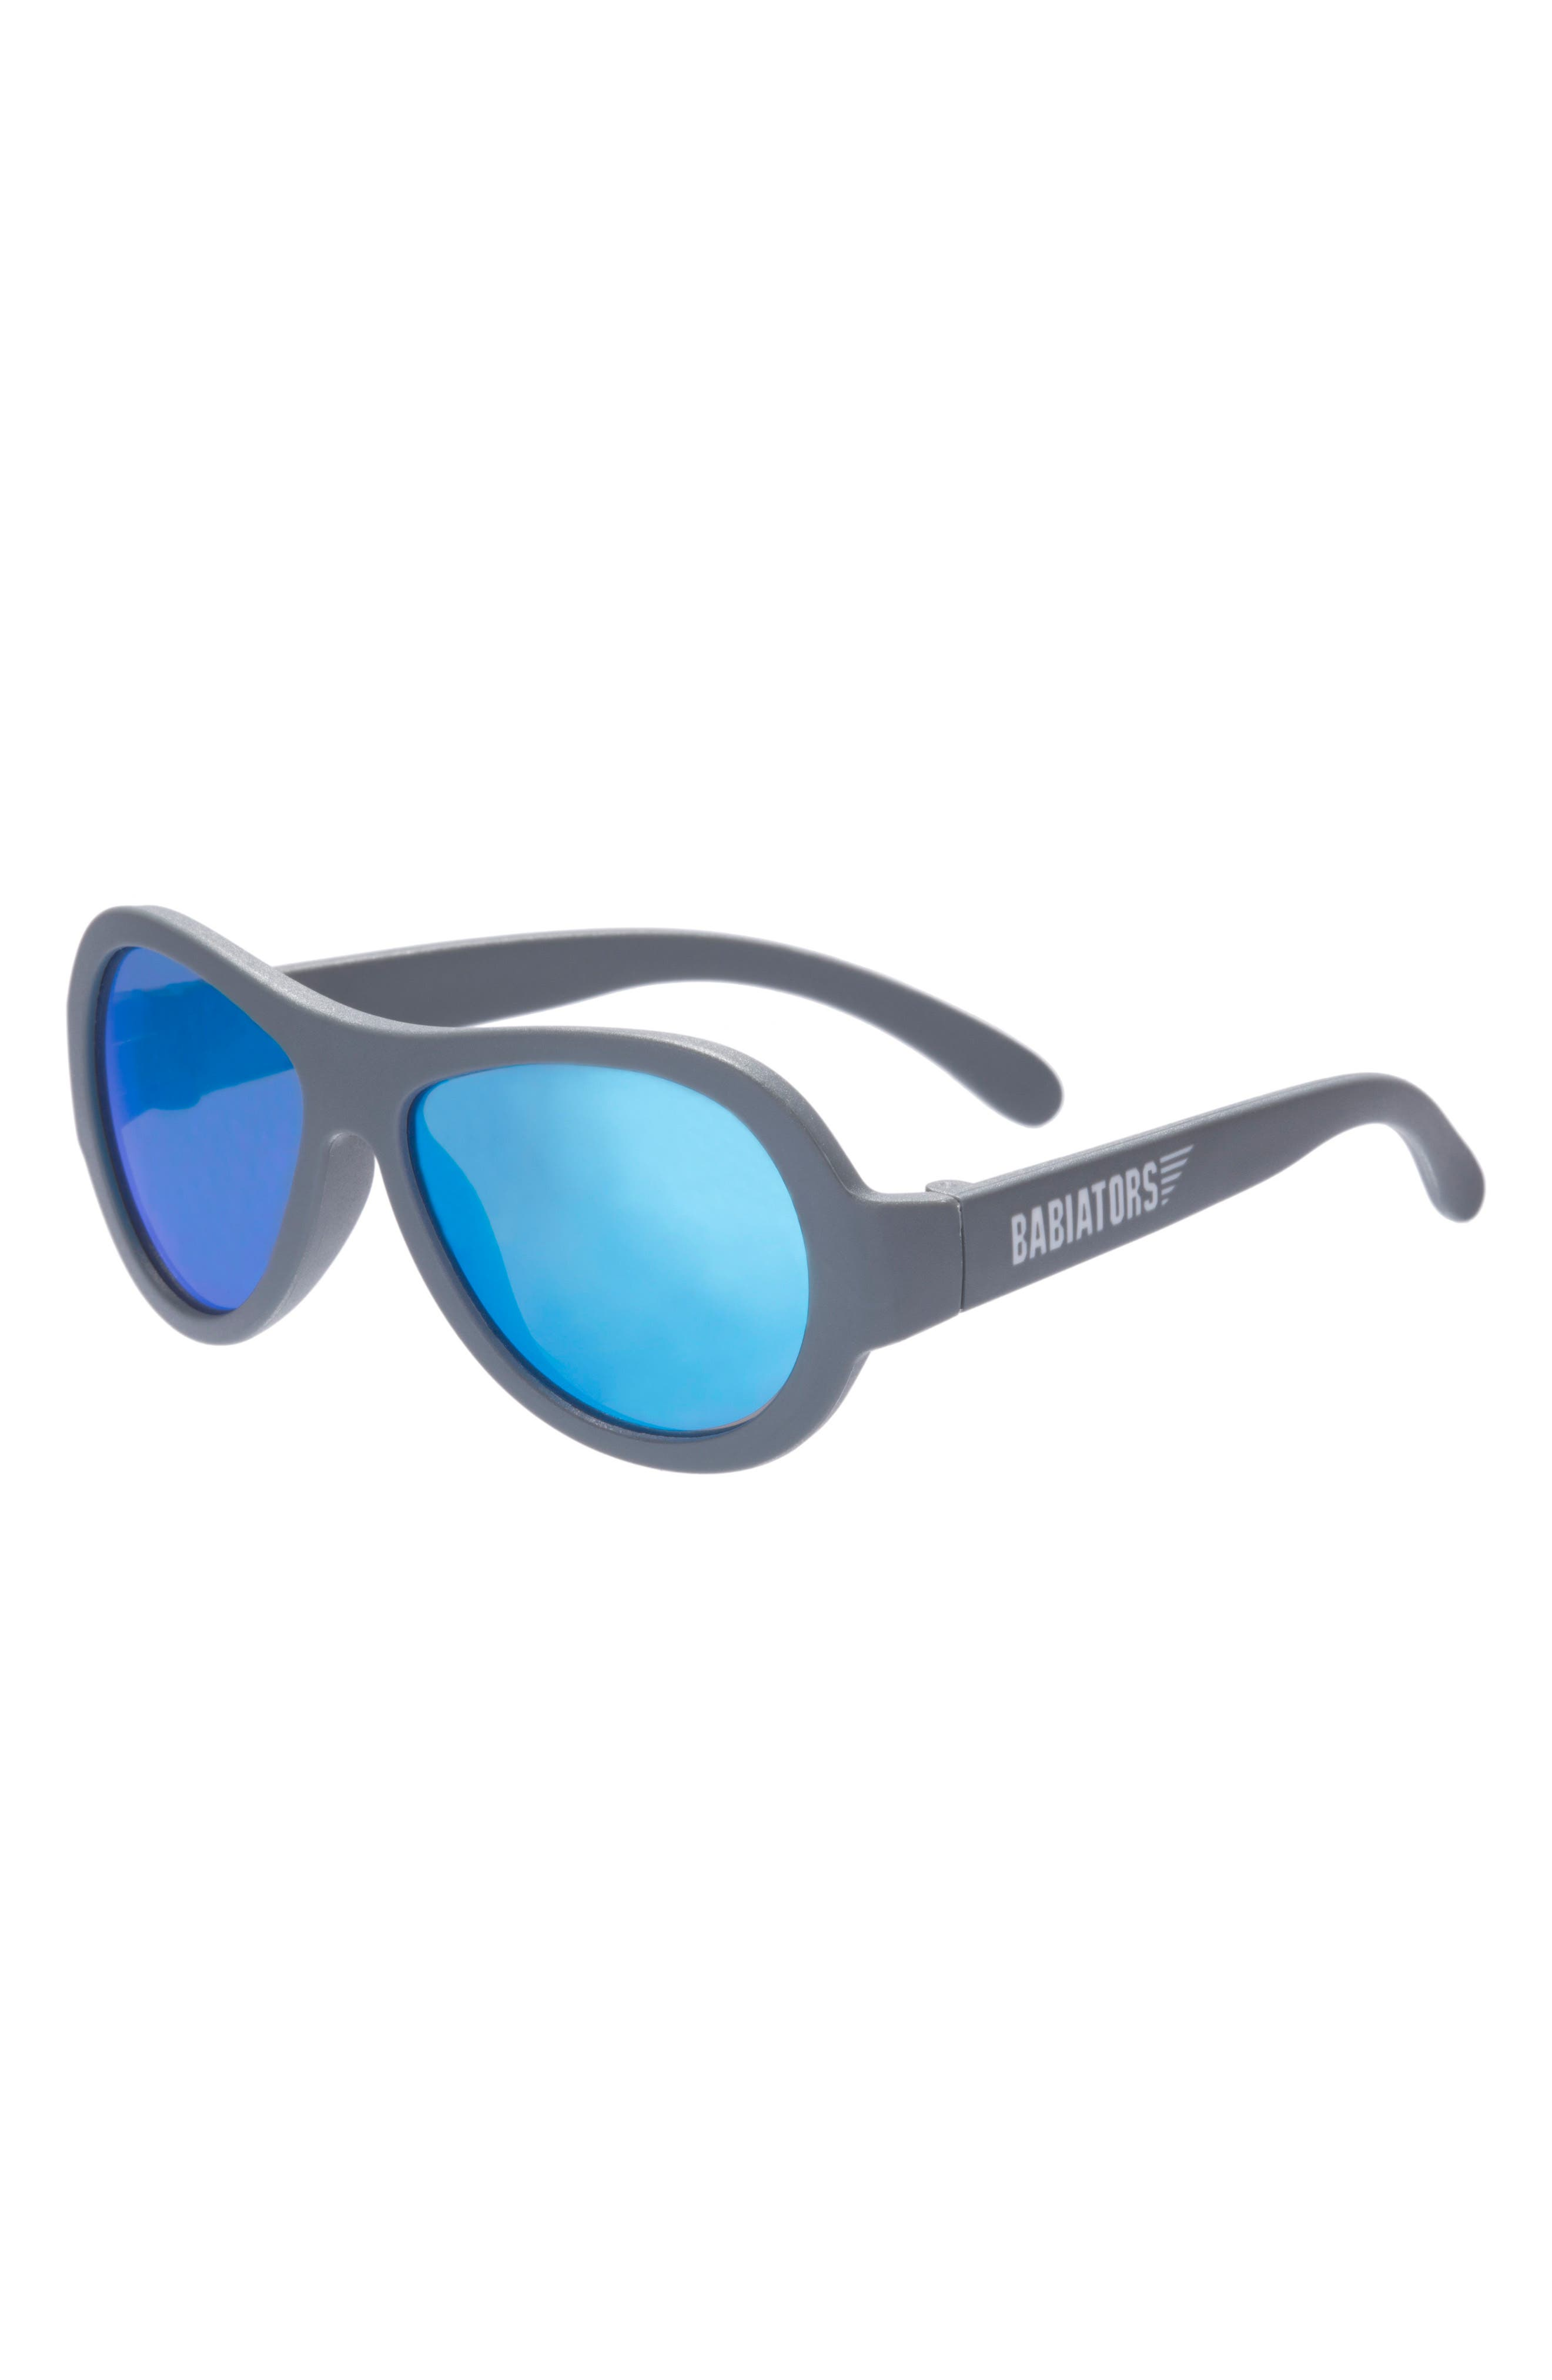 Original Aviator Sunglasses,                         Main,                         color, BLUE STEEL